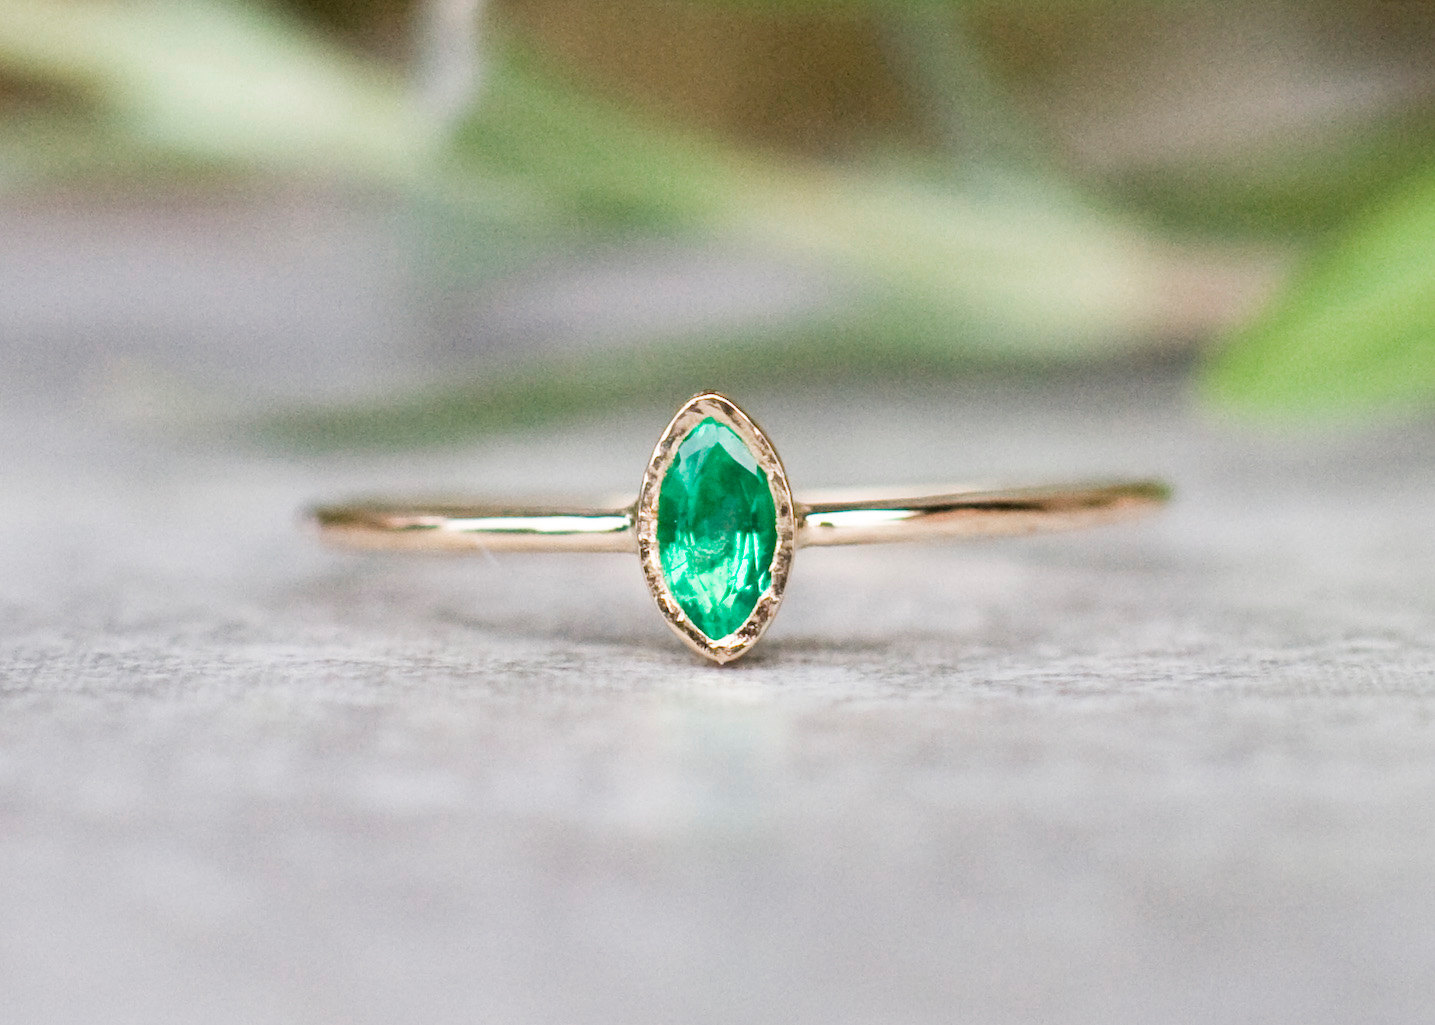 jewellery diamondere blog bride fancy rings with emerald diamonds the engagement cut for alternative gemstone